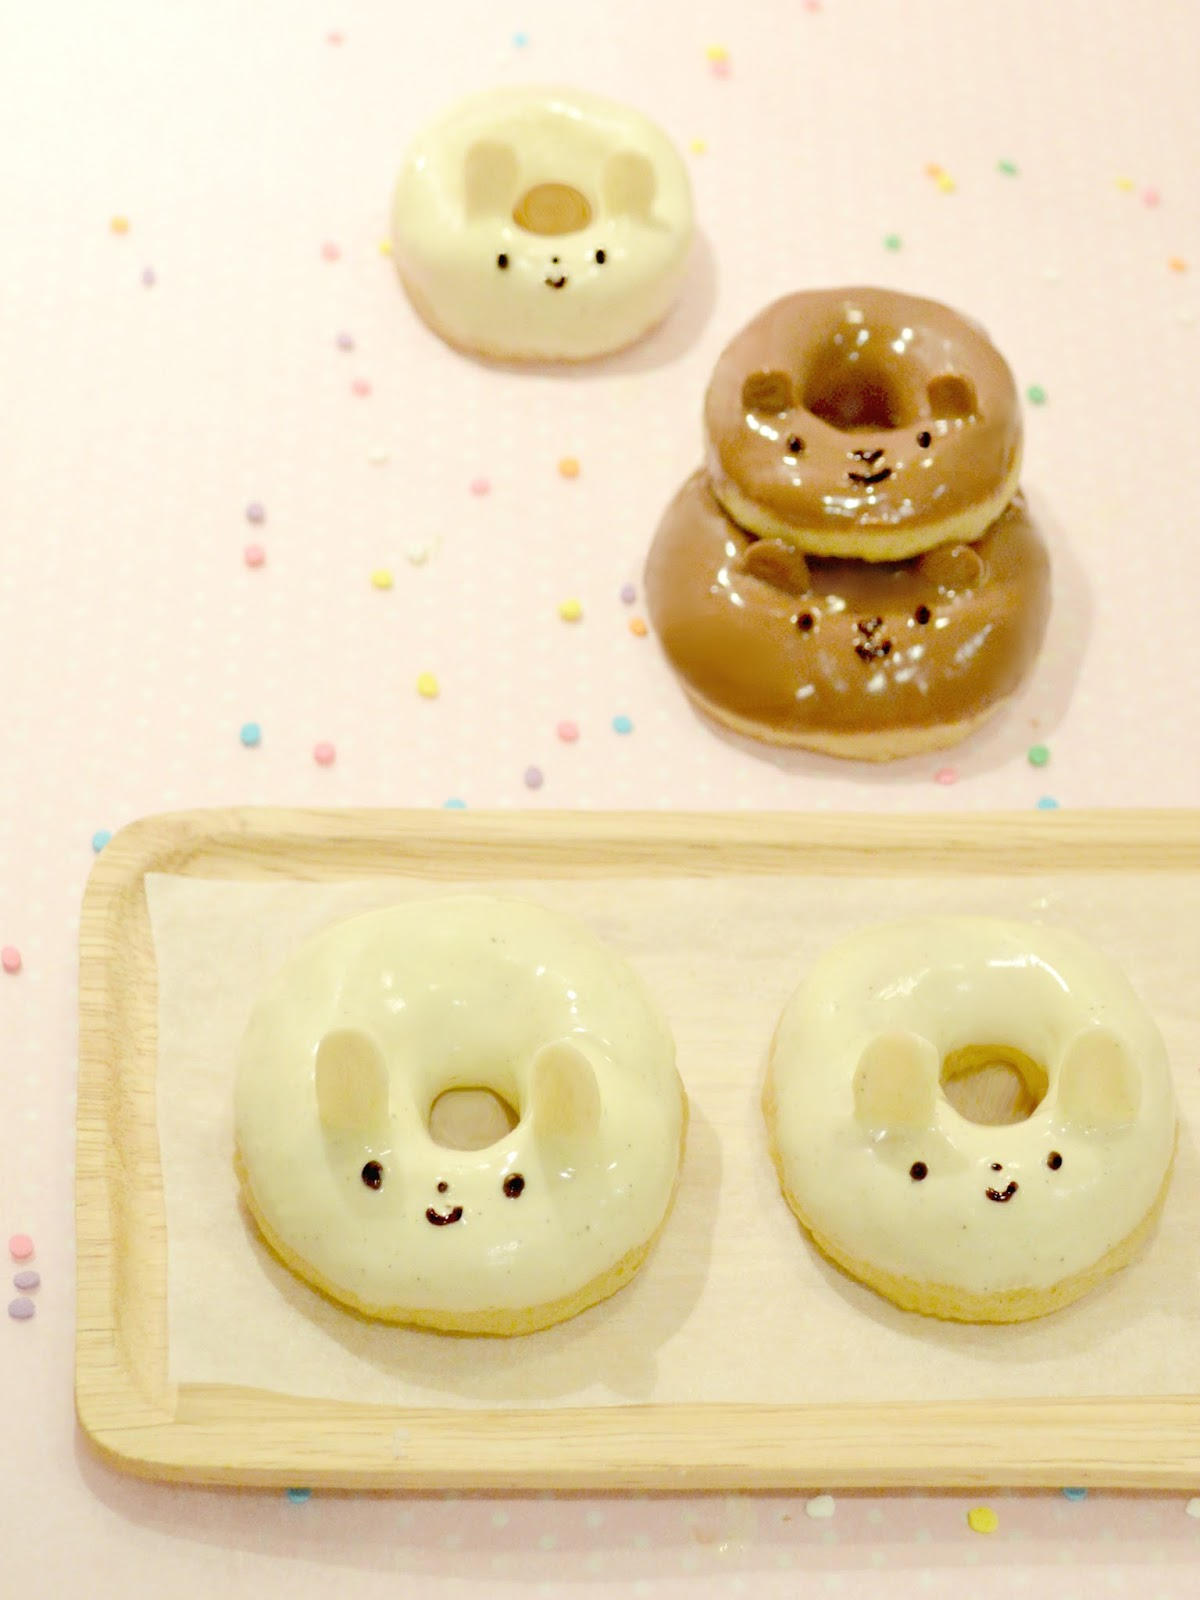 Cherie Kelly's Bear and Rabbit Animal Baked Doughnuts (Not Fried)